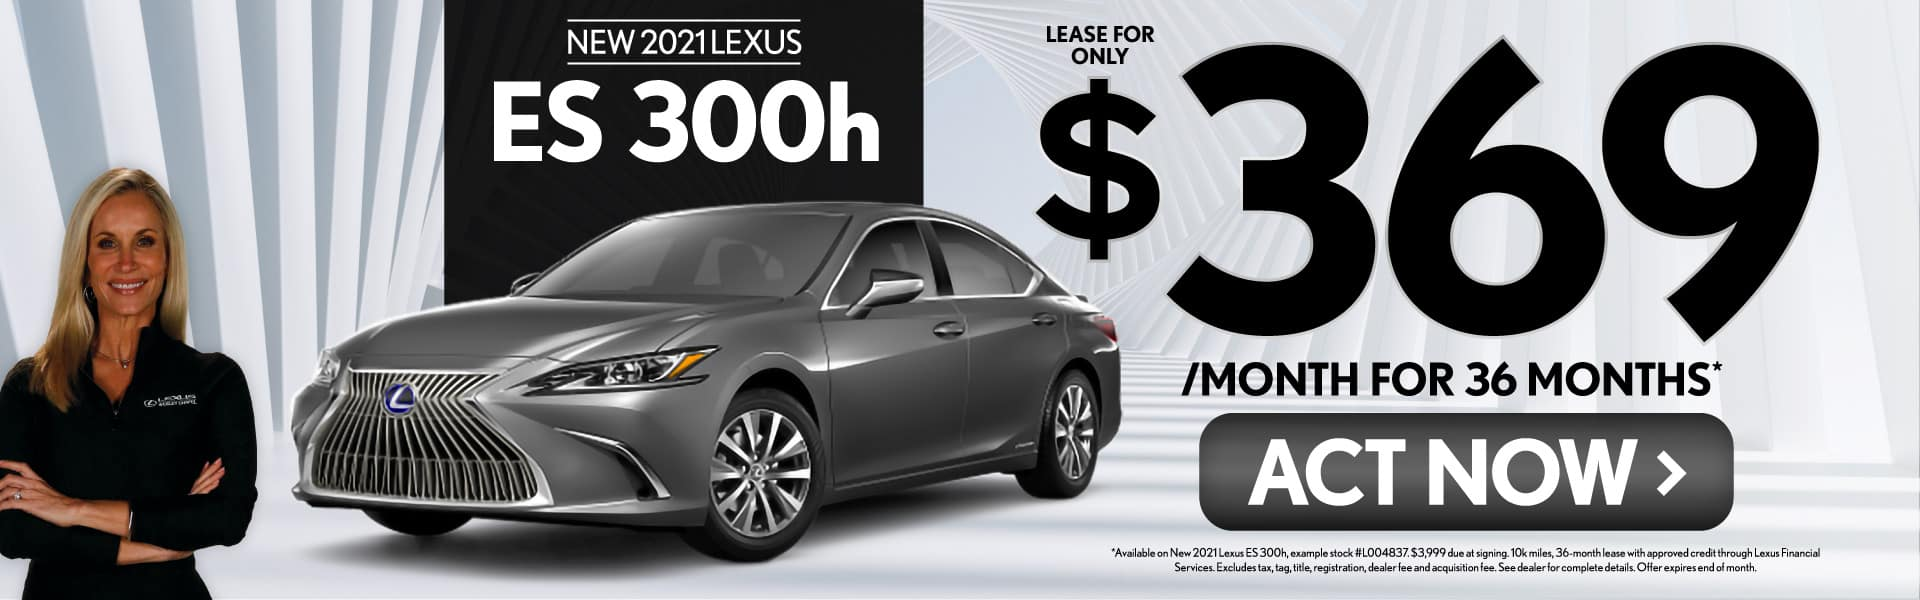 New 2021 Lexus ES 300h only $369/mo - ACT NOW